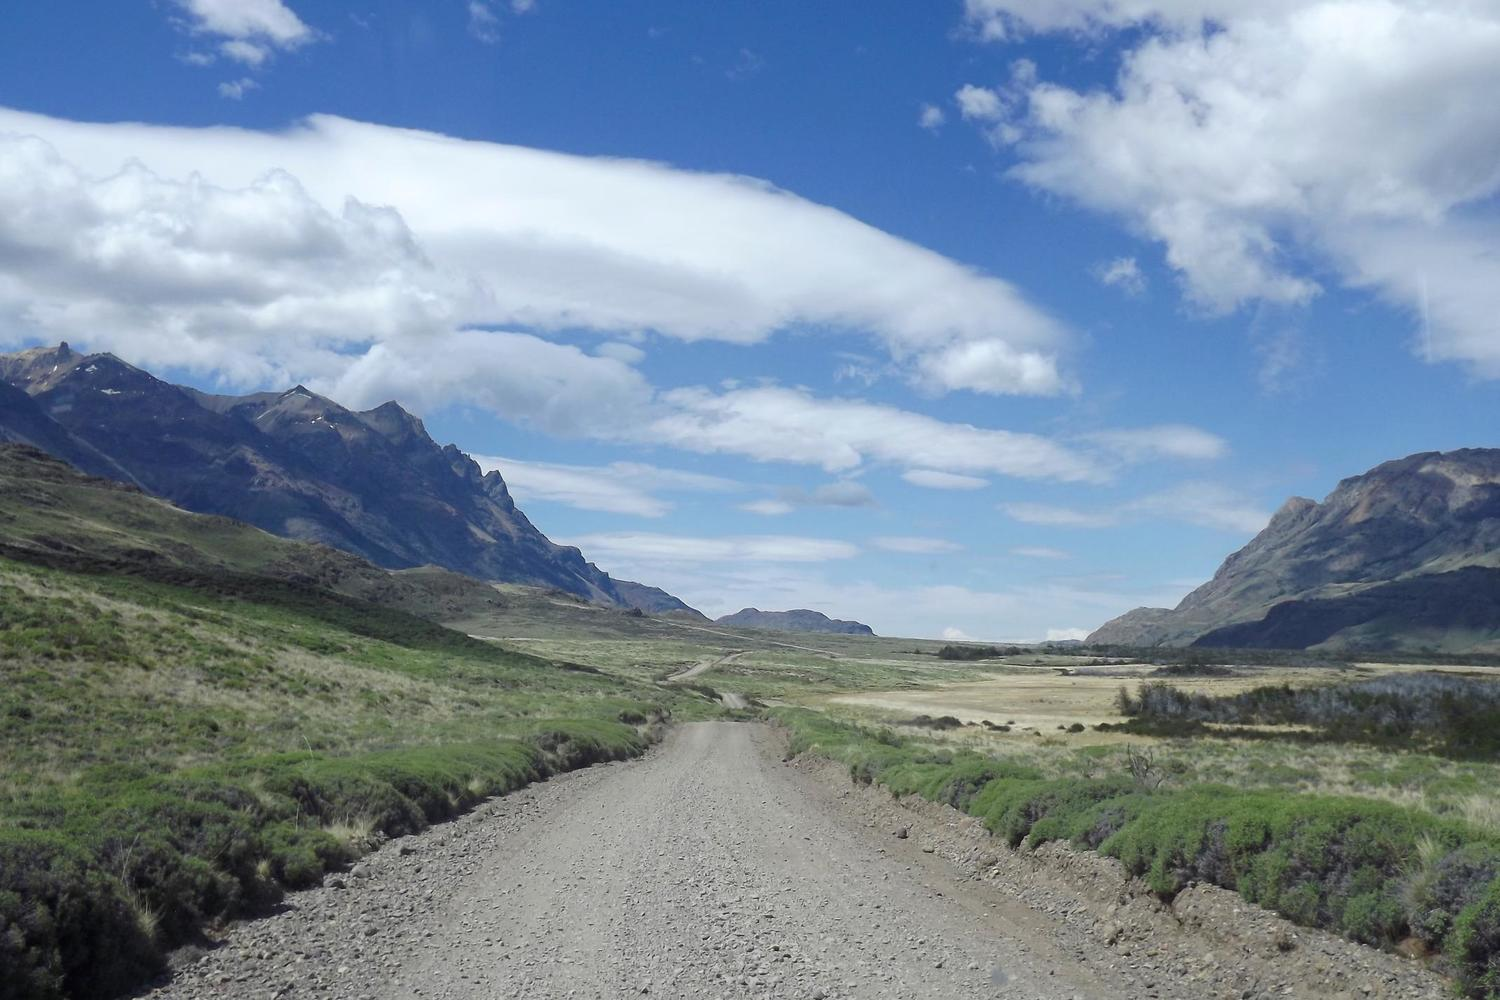 The road which runs through the heart of the future Parque Patagonia